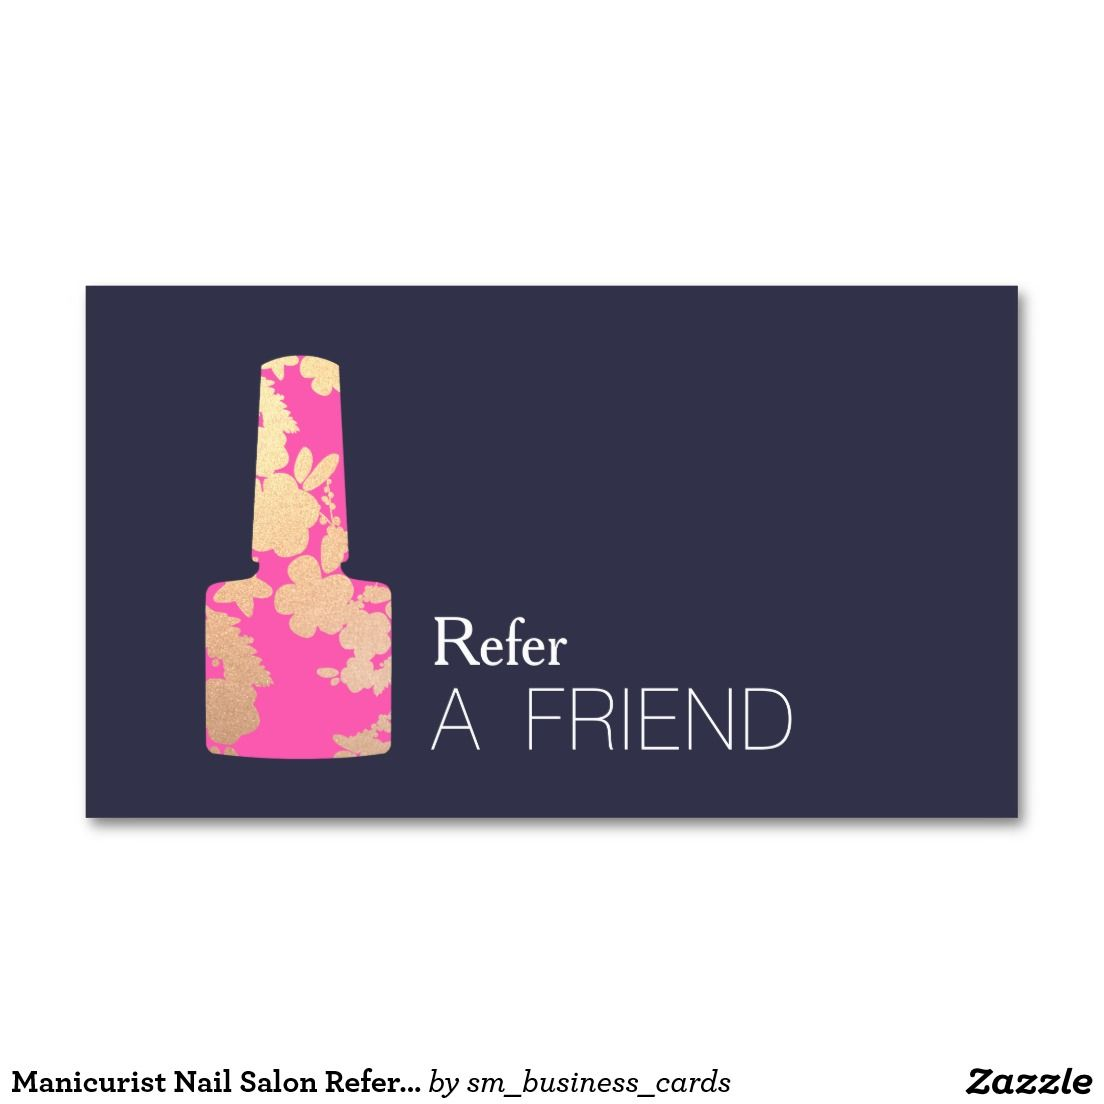 Manicurist nail salon refer a friend double sided standard manicurist nail salon refer a friend double sided standard business cards pack of 100 magicingreecefo Image collections